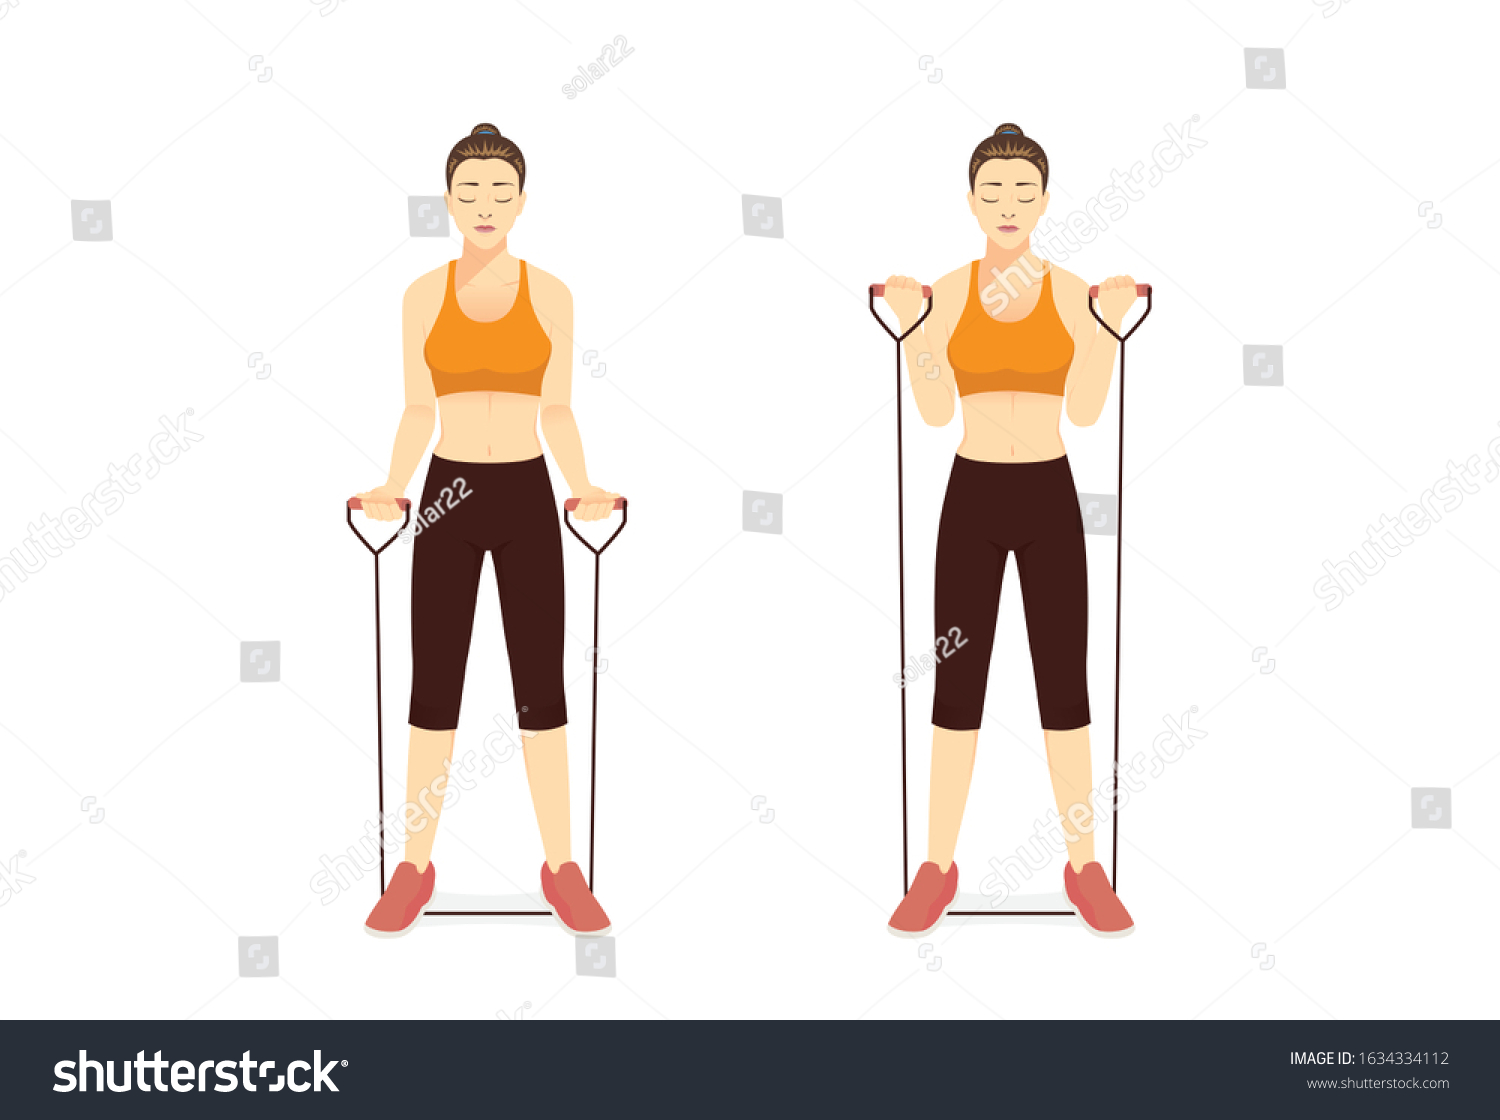 Woman Using Equipment Exercise Resistance Band Stock Vector